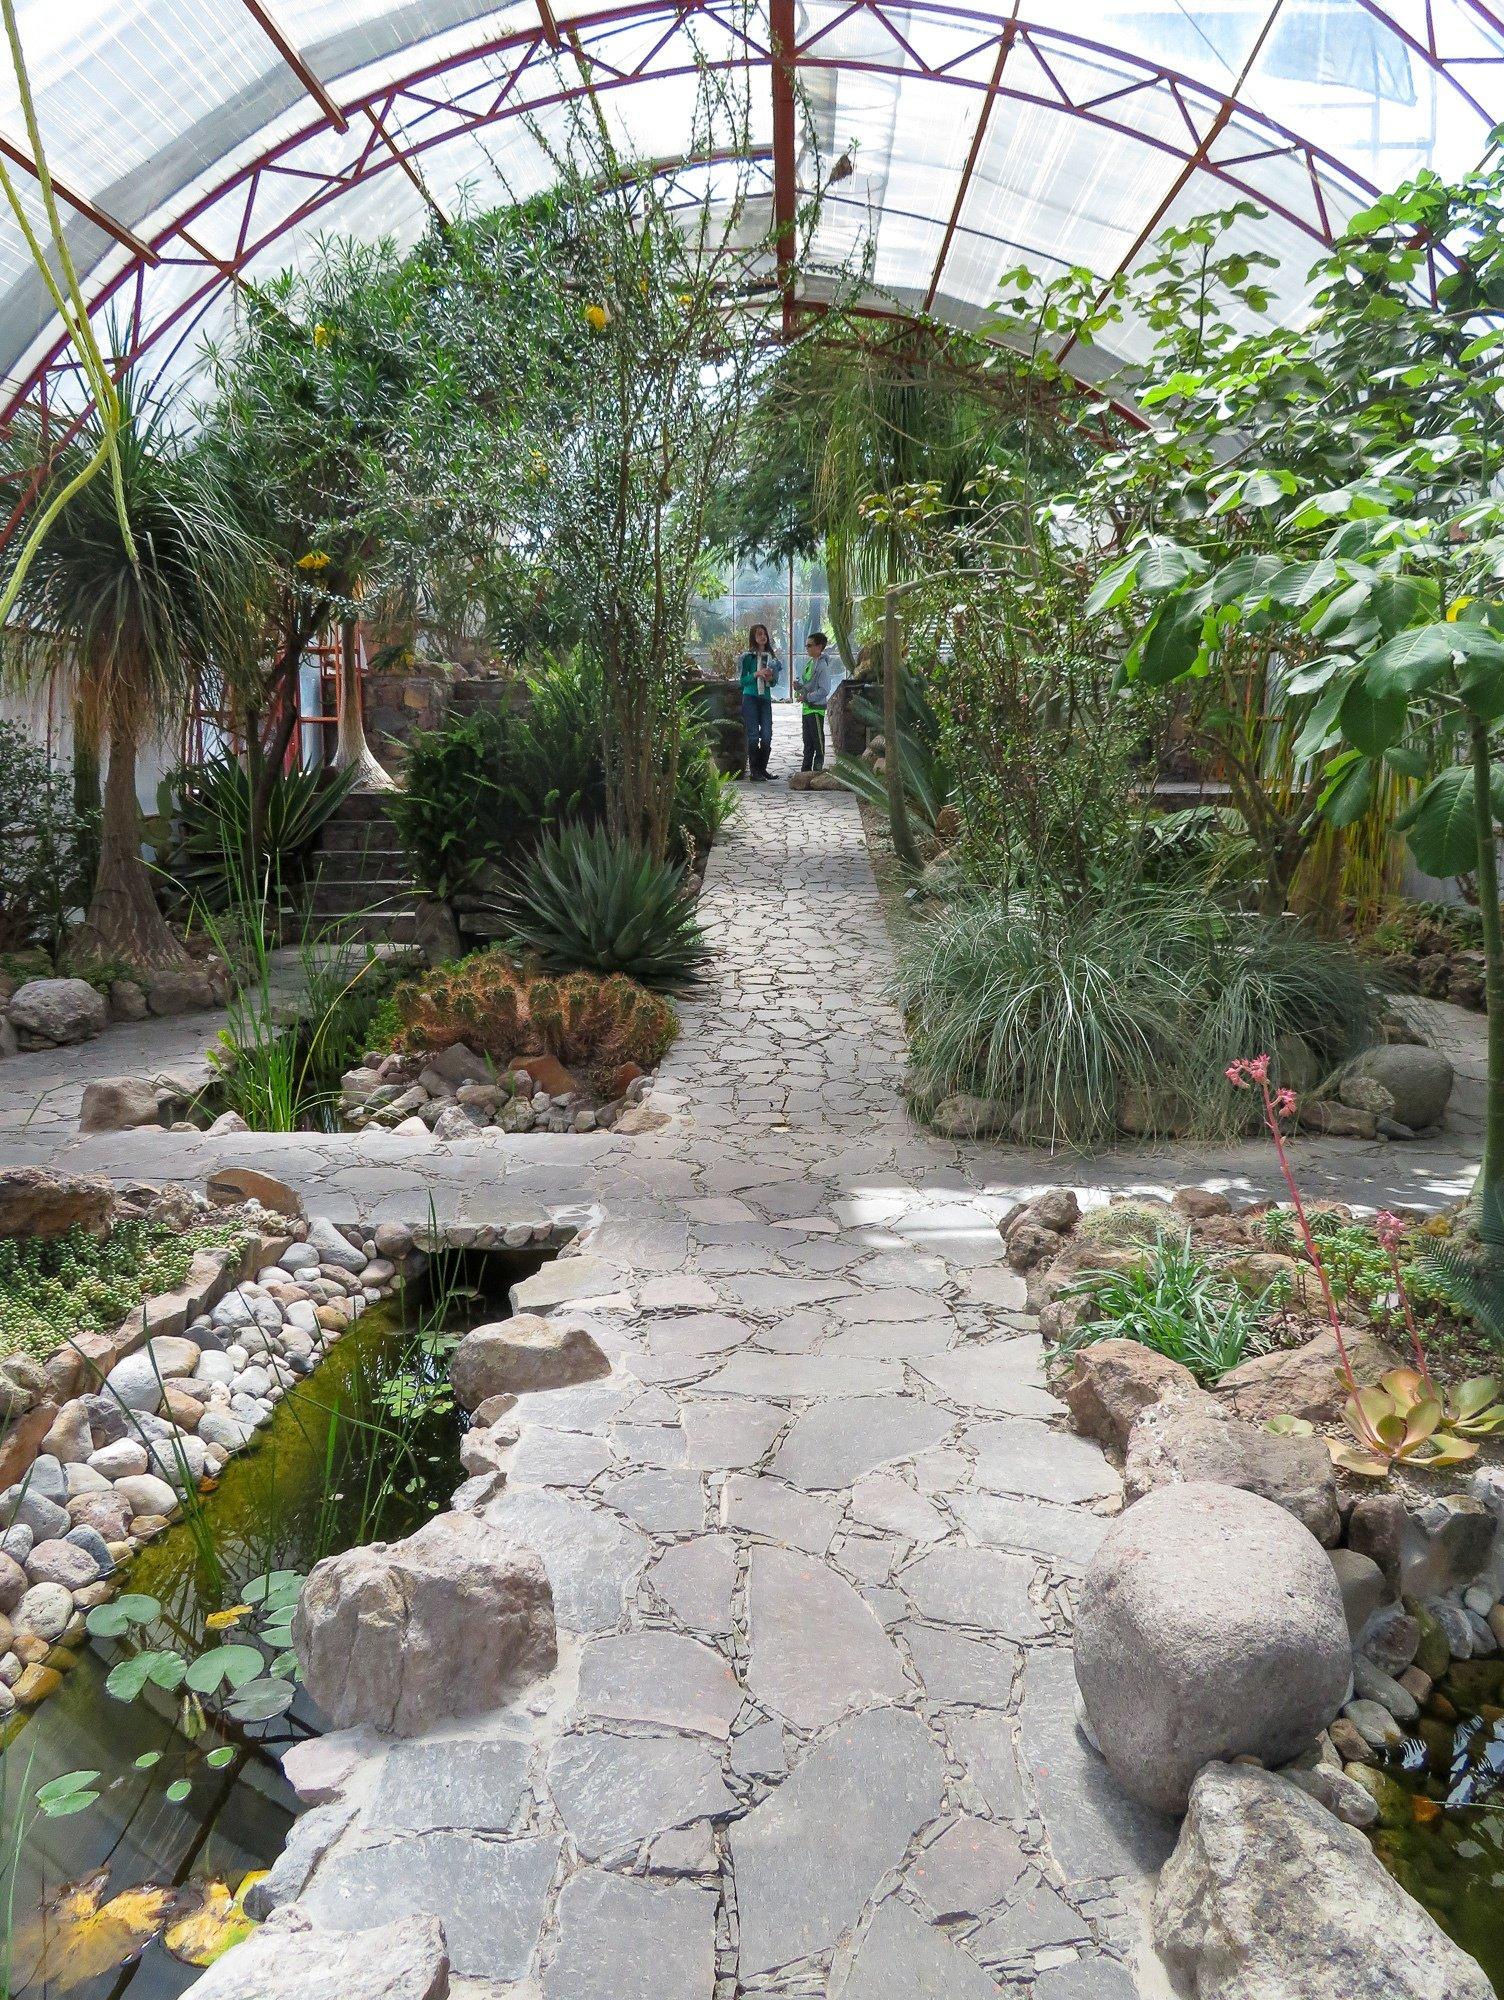 A greenhouse at El Charco del Ingenio